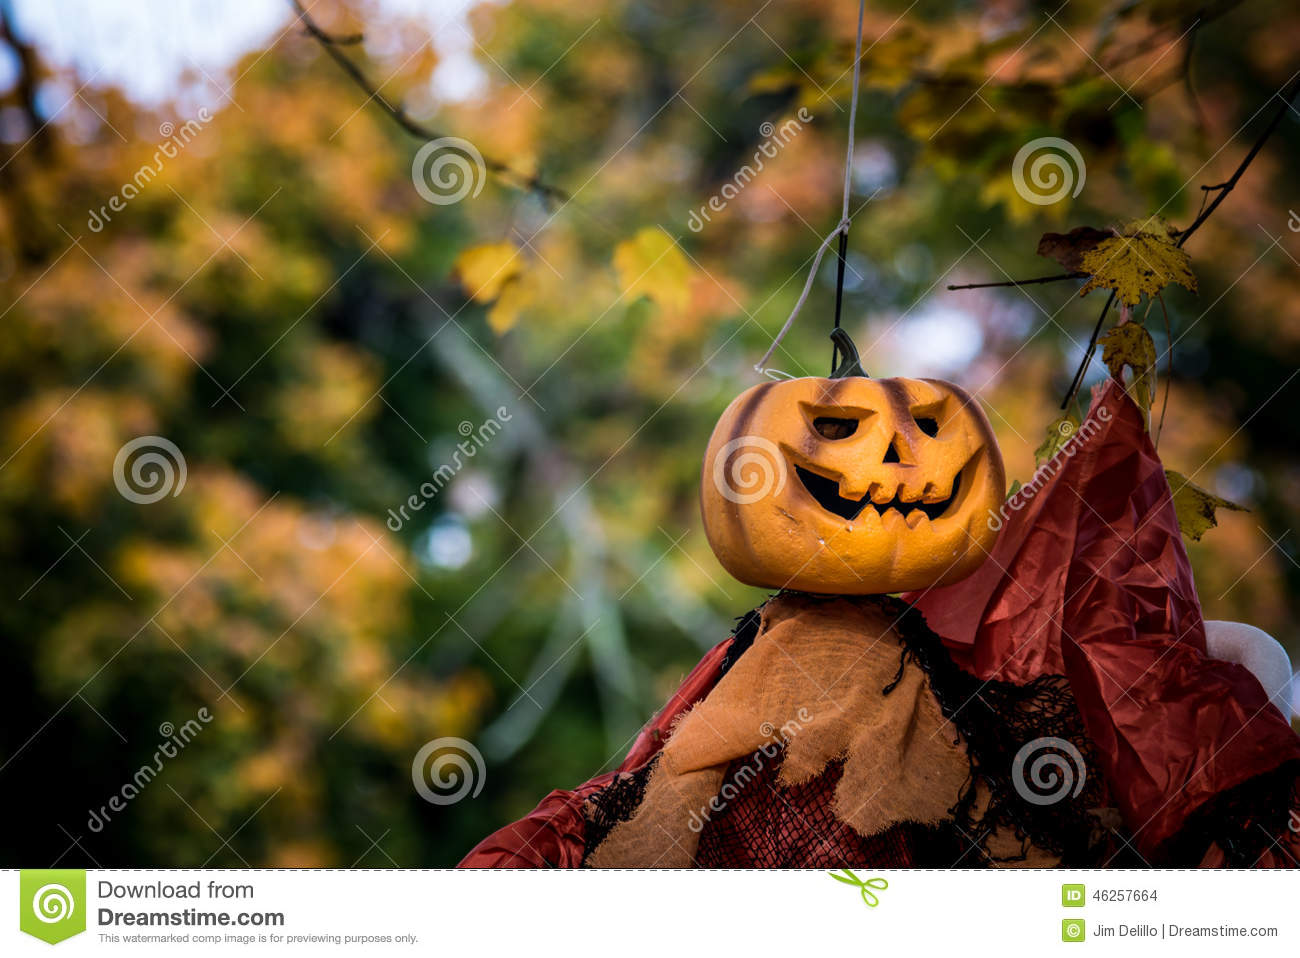 Pumpkin Head Halloween Decoration Stock Photo - Image: 46257664